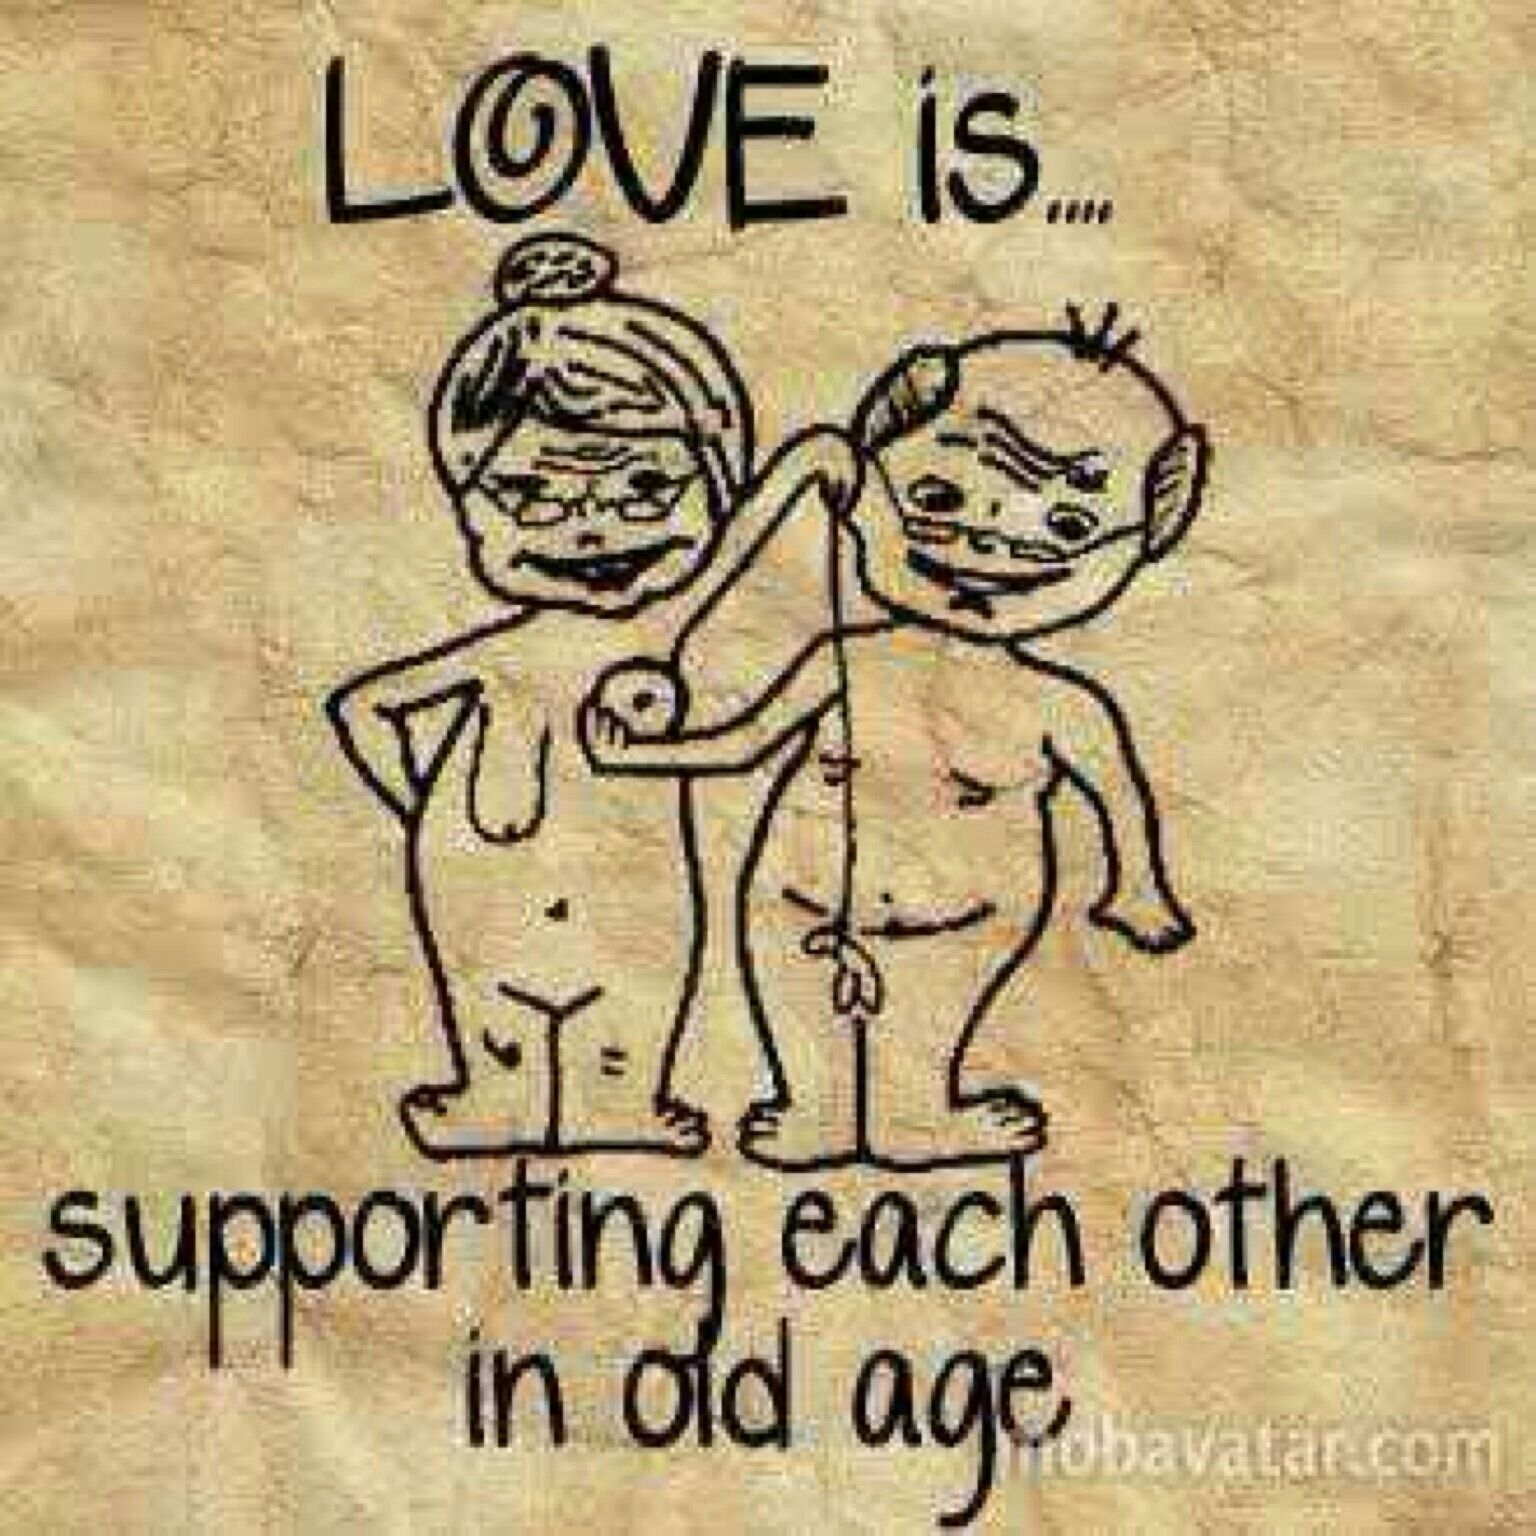 Love is supporting each other in old age Quotes 2016 Relationship